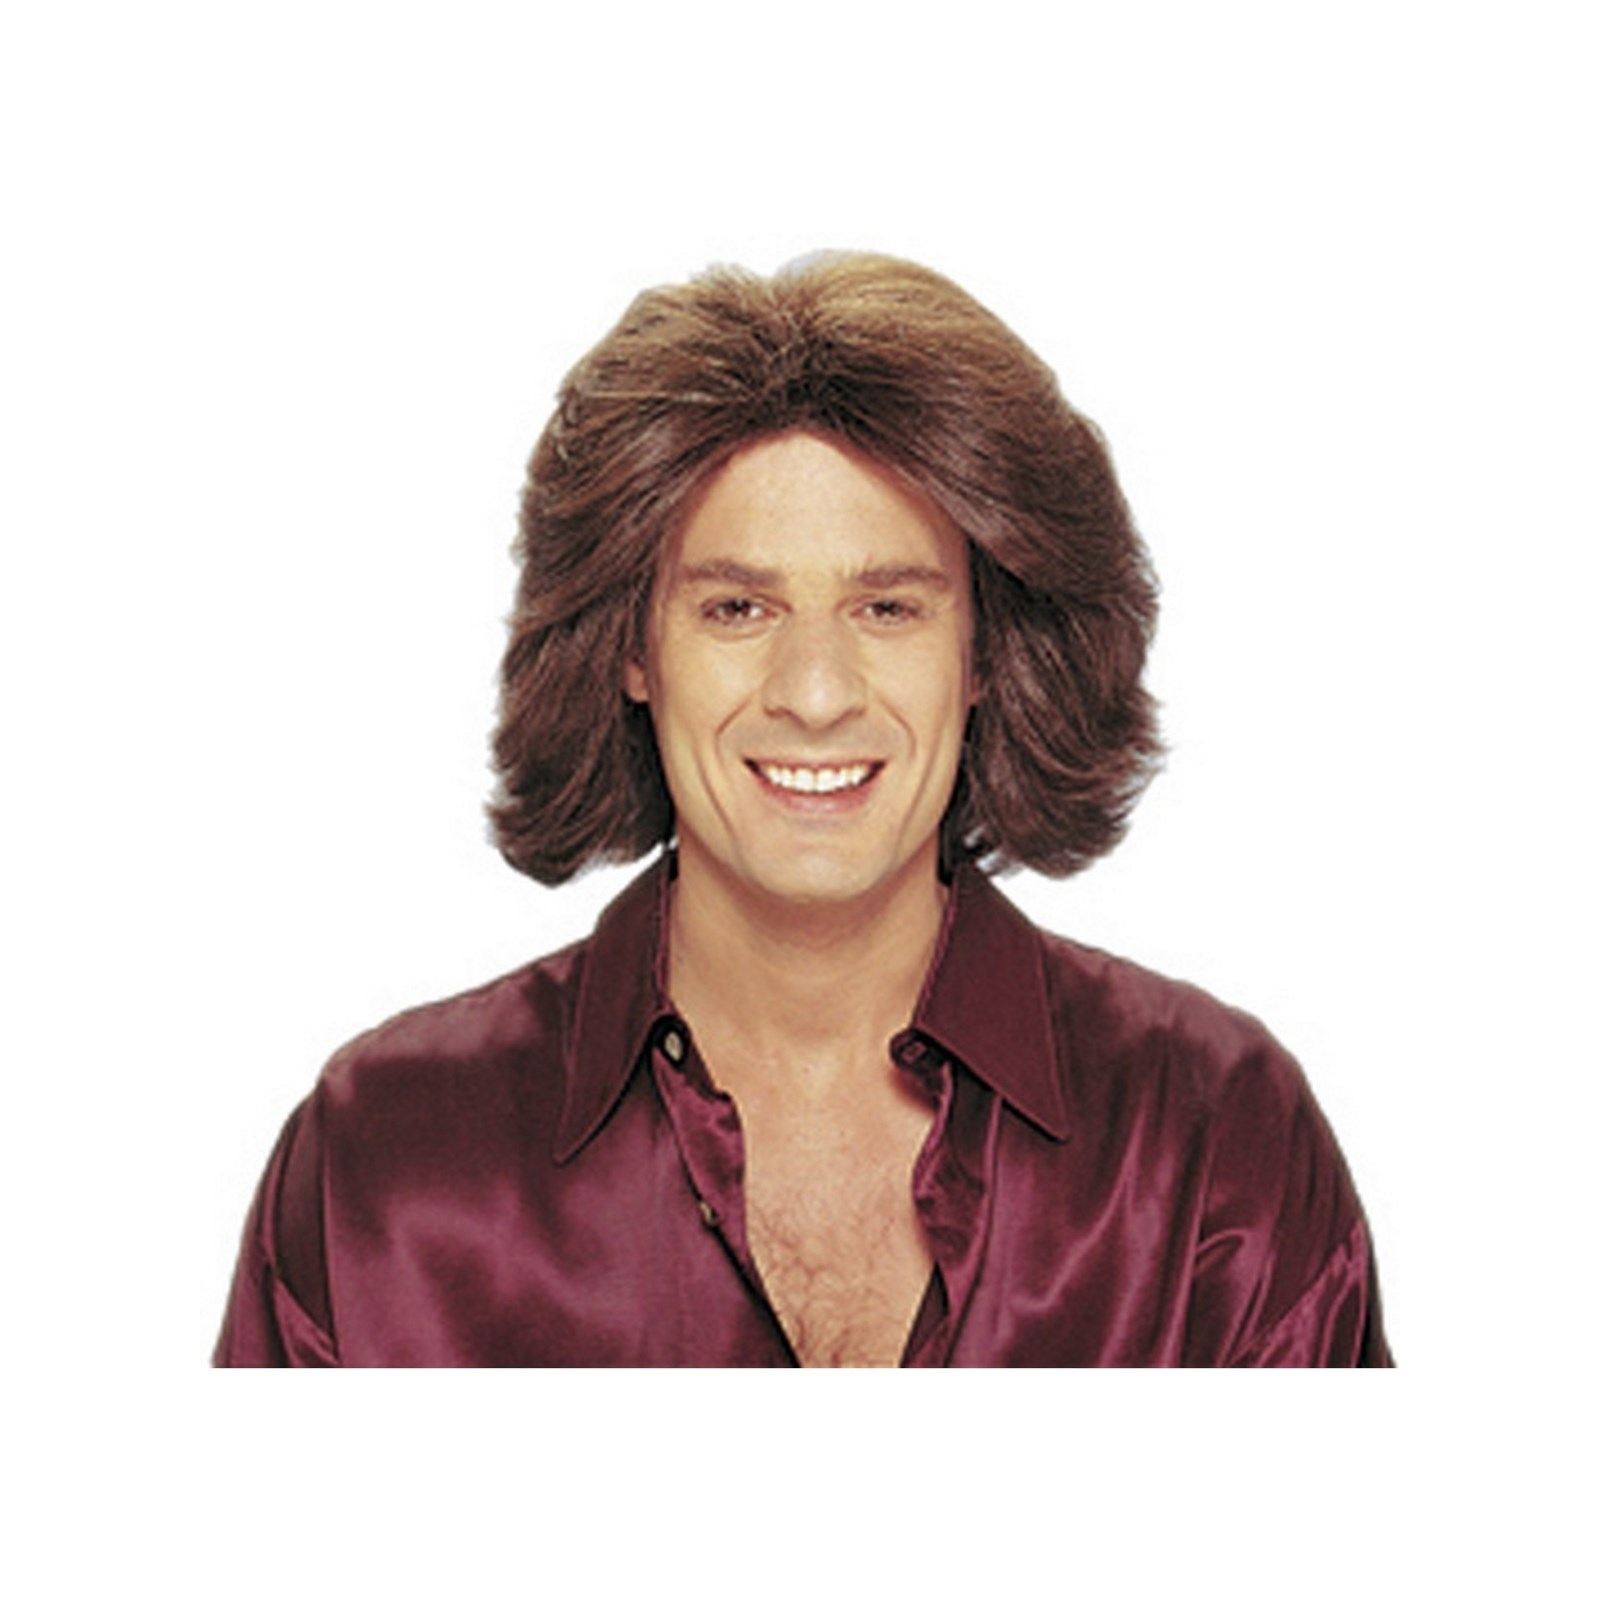 Feathered 70s Men's Brown Wig Halloween Costume Accessory